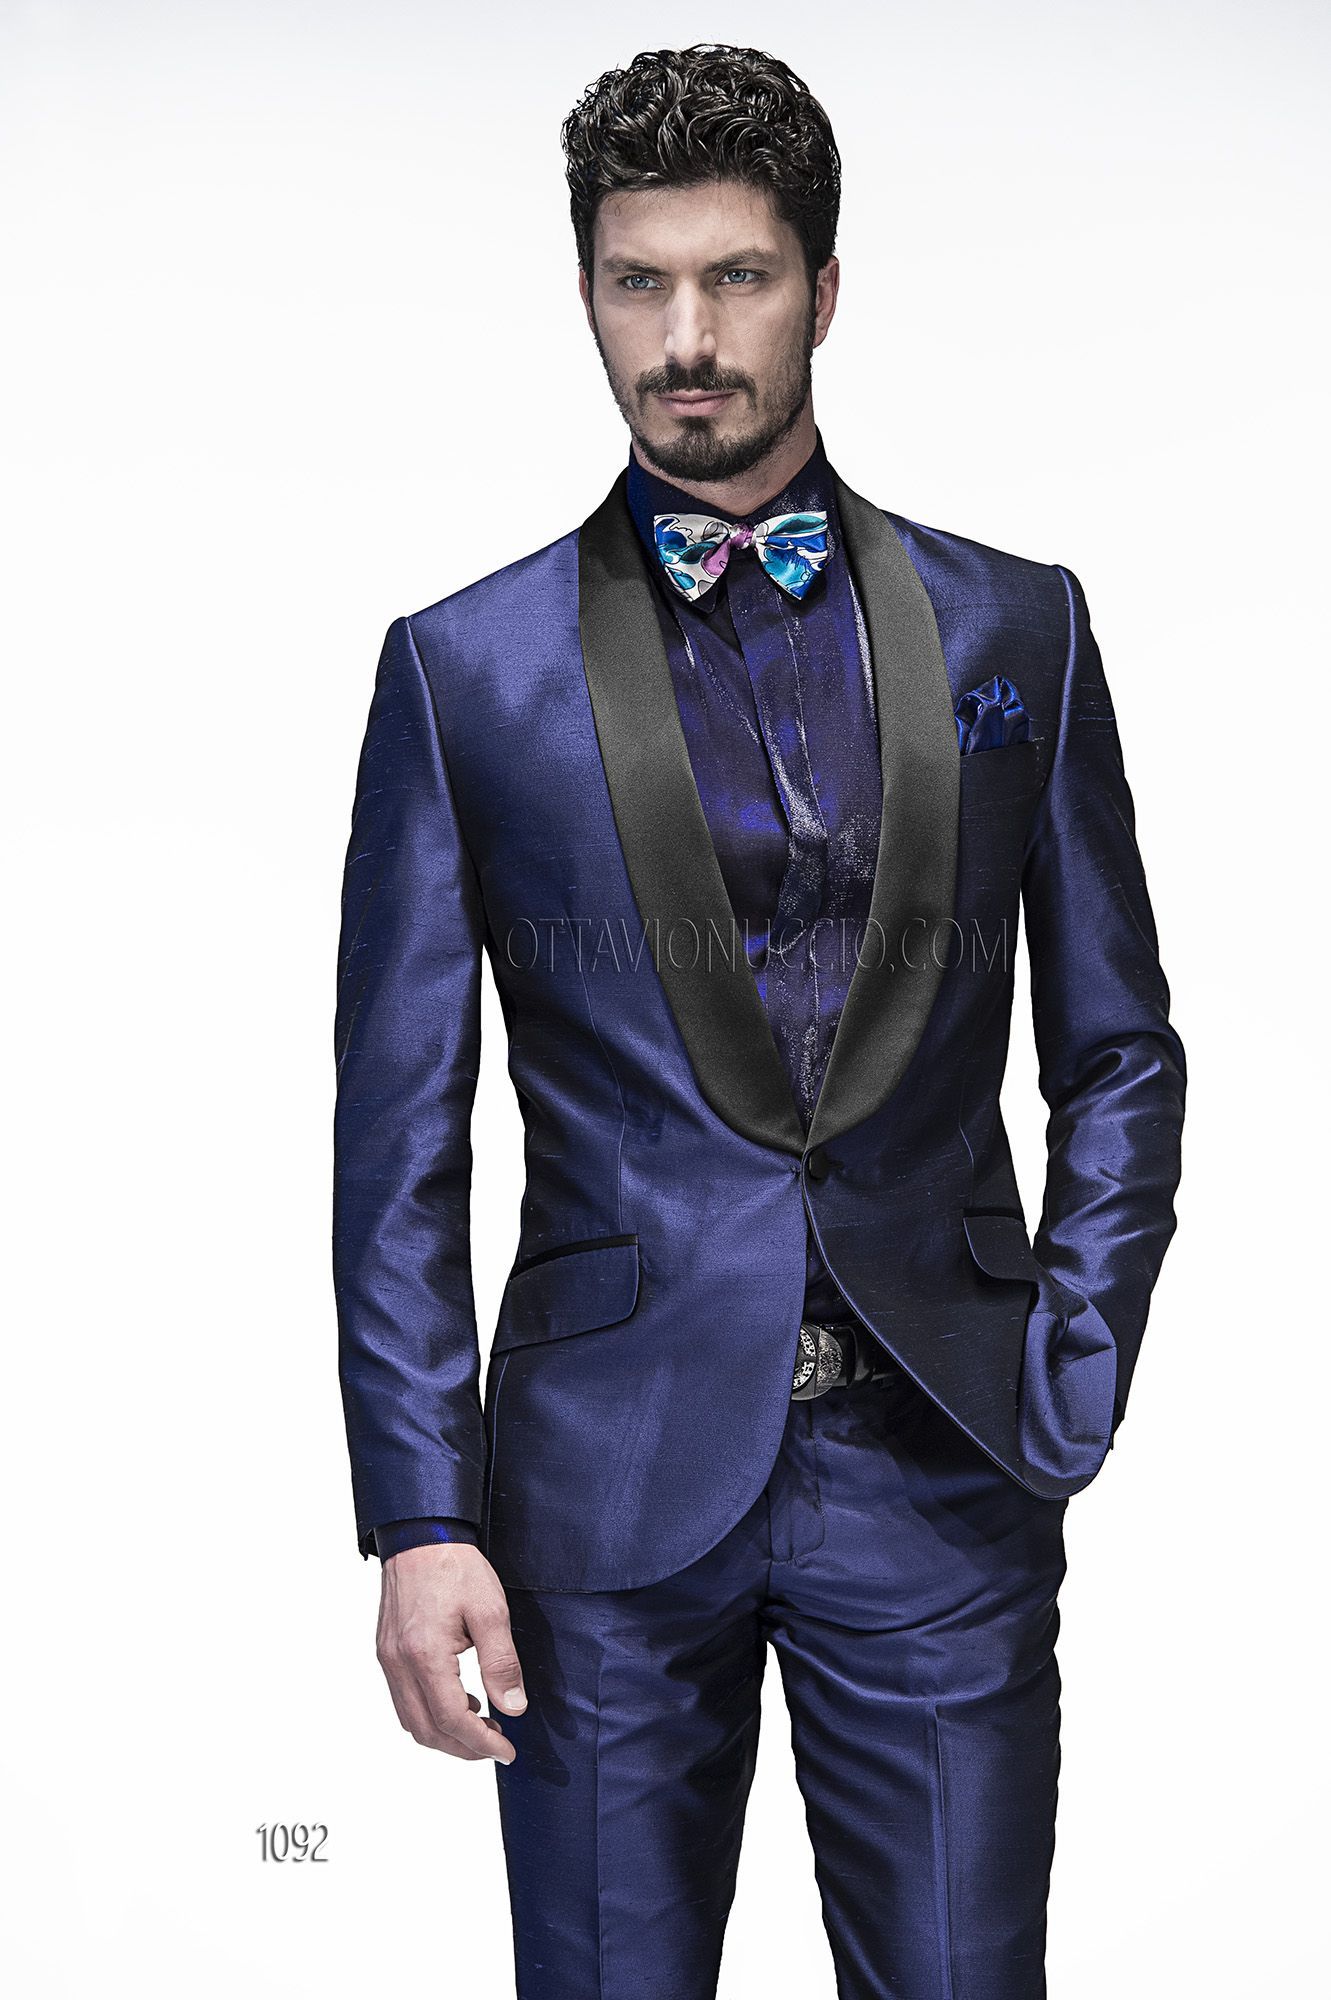 Smoking in shantung blu royal con rever a contrasto neri man suits